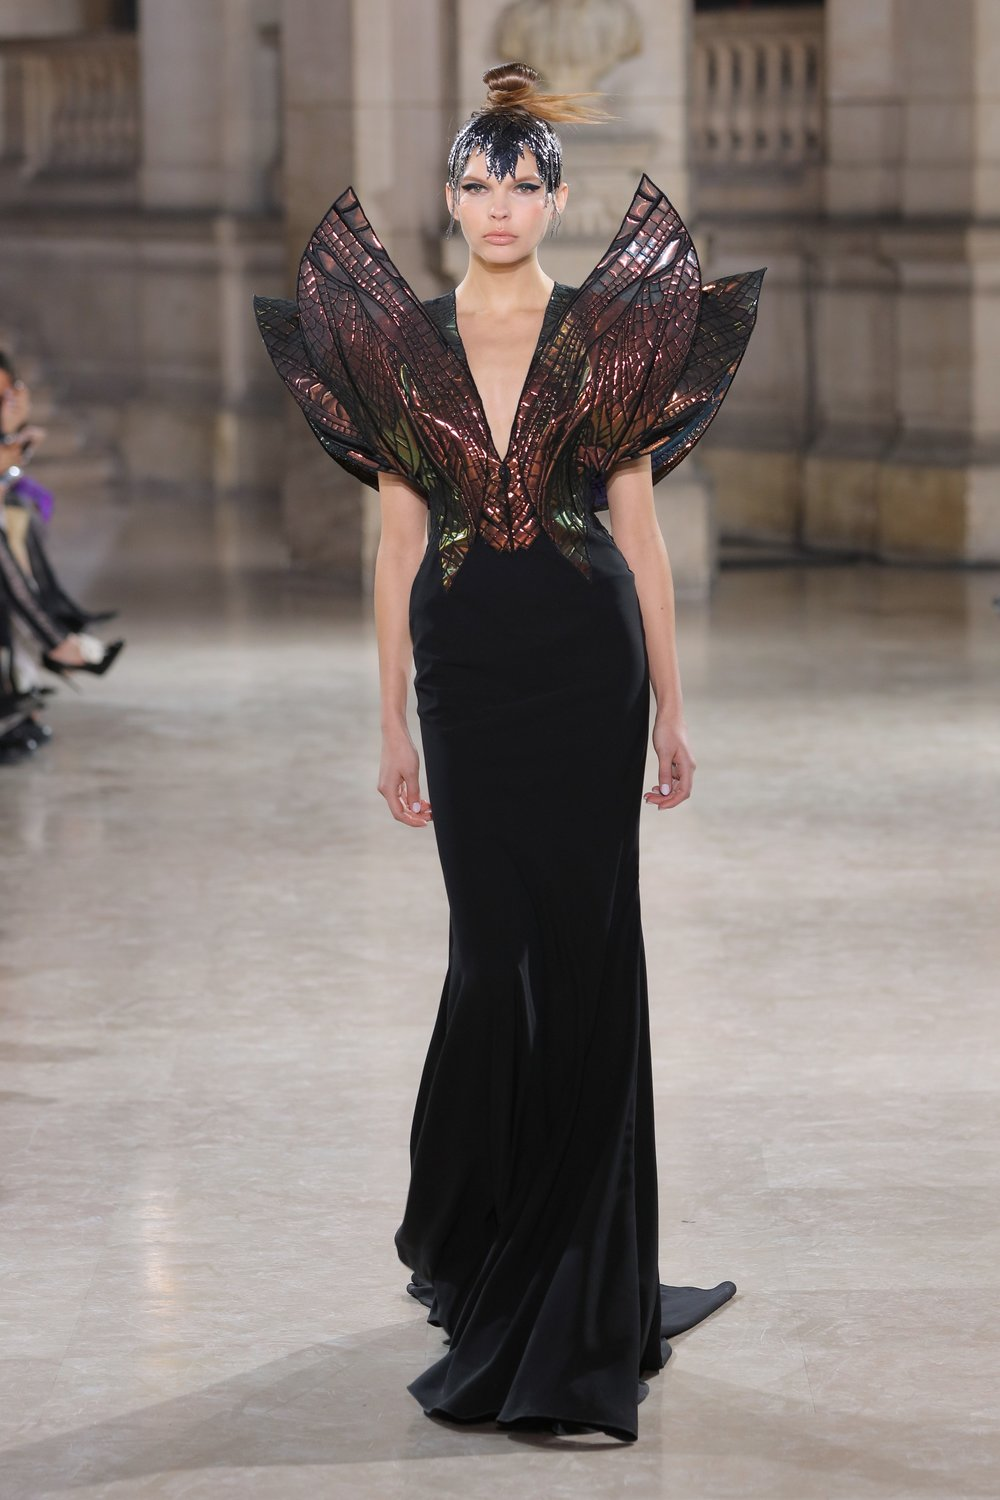 TONY_WARD_COUTURE_SS19_1.jpg